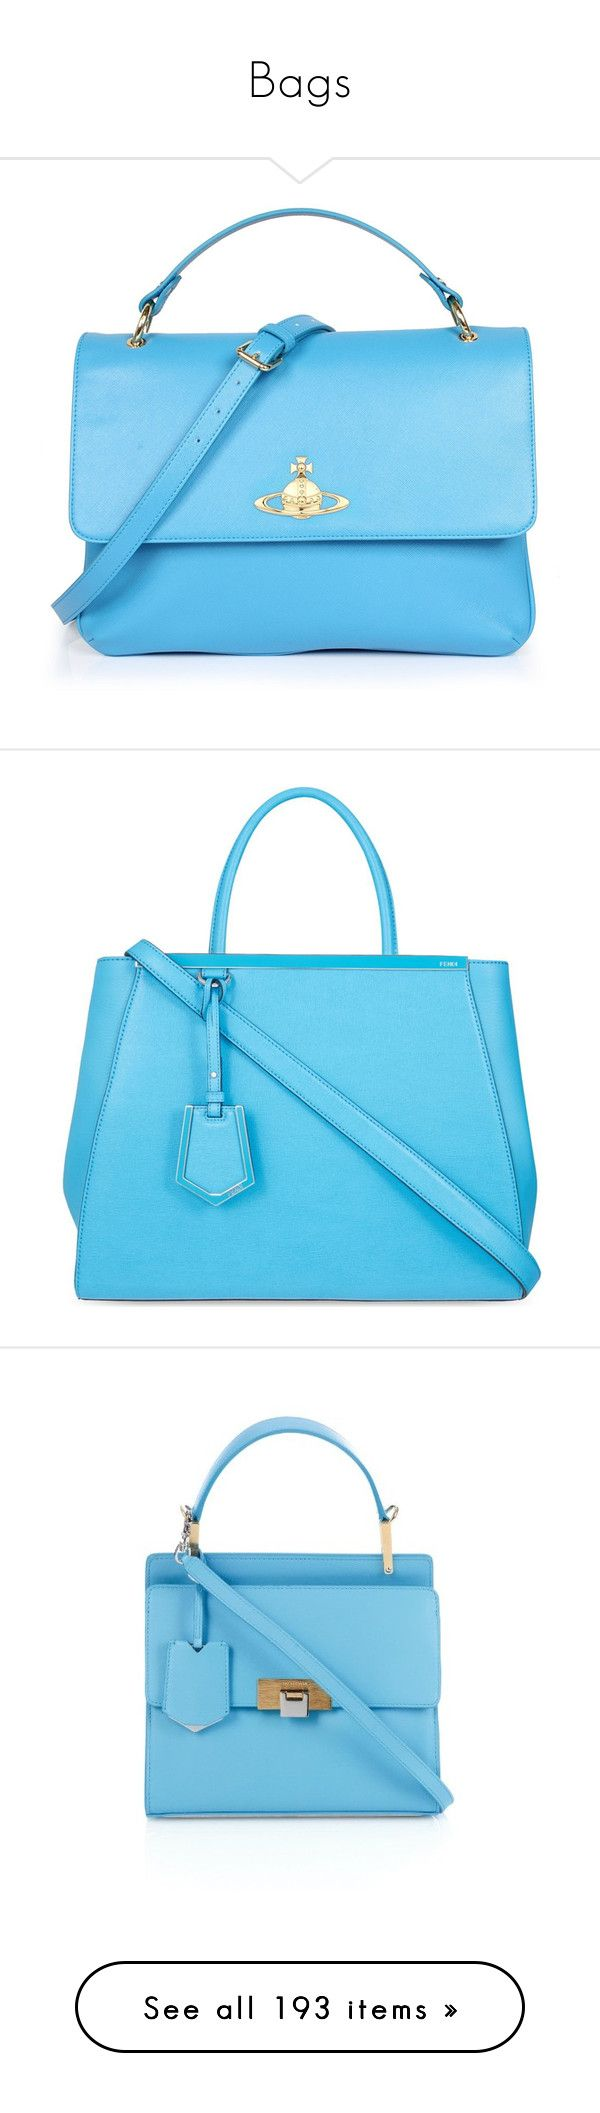 """""""Bags"""" by linn-way ❤ liked on Polyvore featuring bags, handbags, accessories, purses, blue handbags, vivienne westwood purse, vivienne westwood, hand-bag, light blue purse and tote bags"""